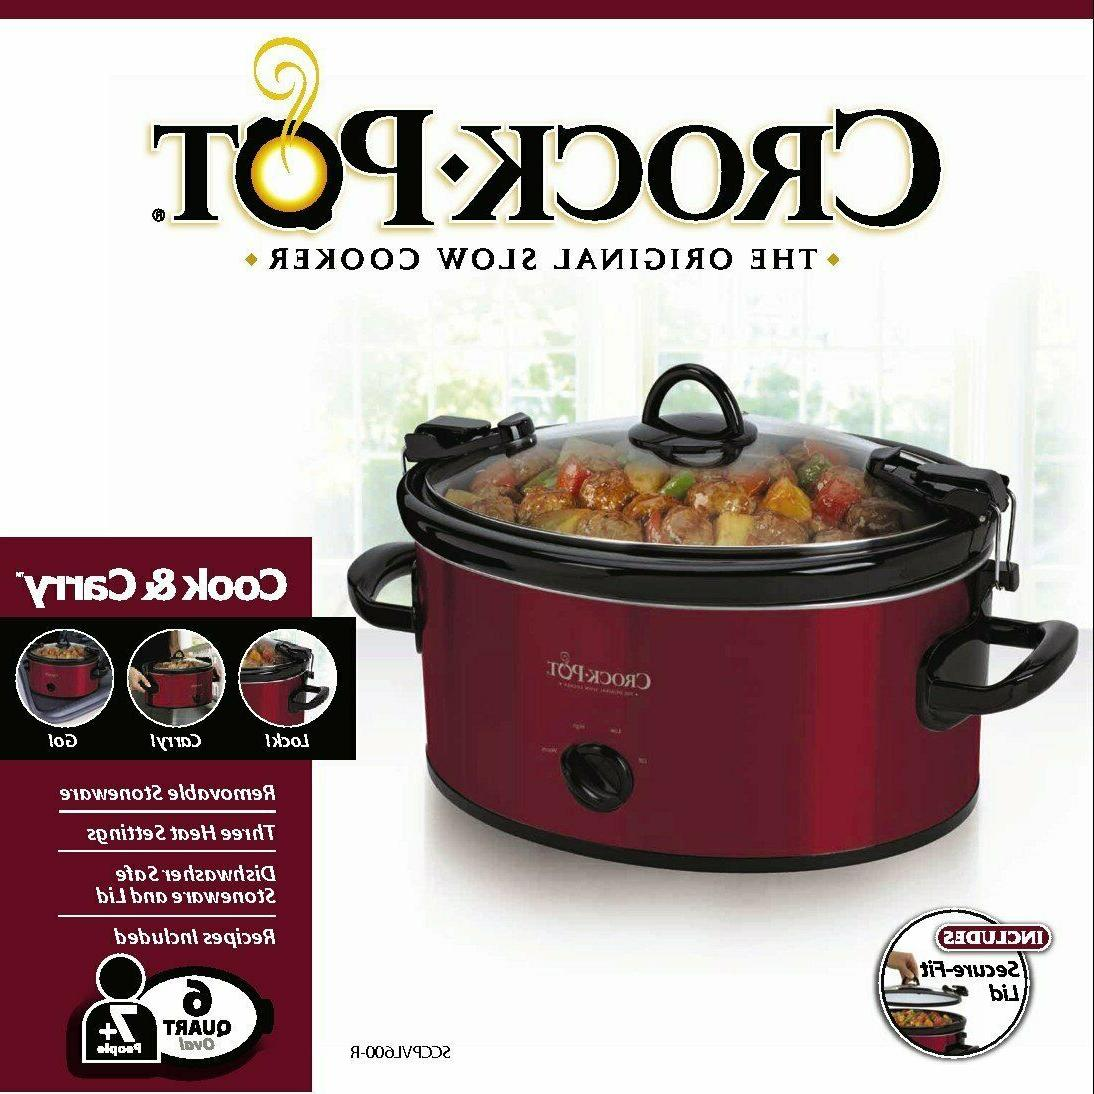 Crock-Pot 6-Quart Cook & Carry Oval Manual Portable Slow Coo